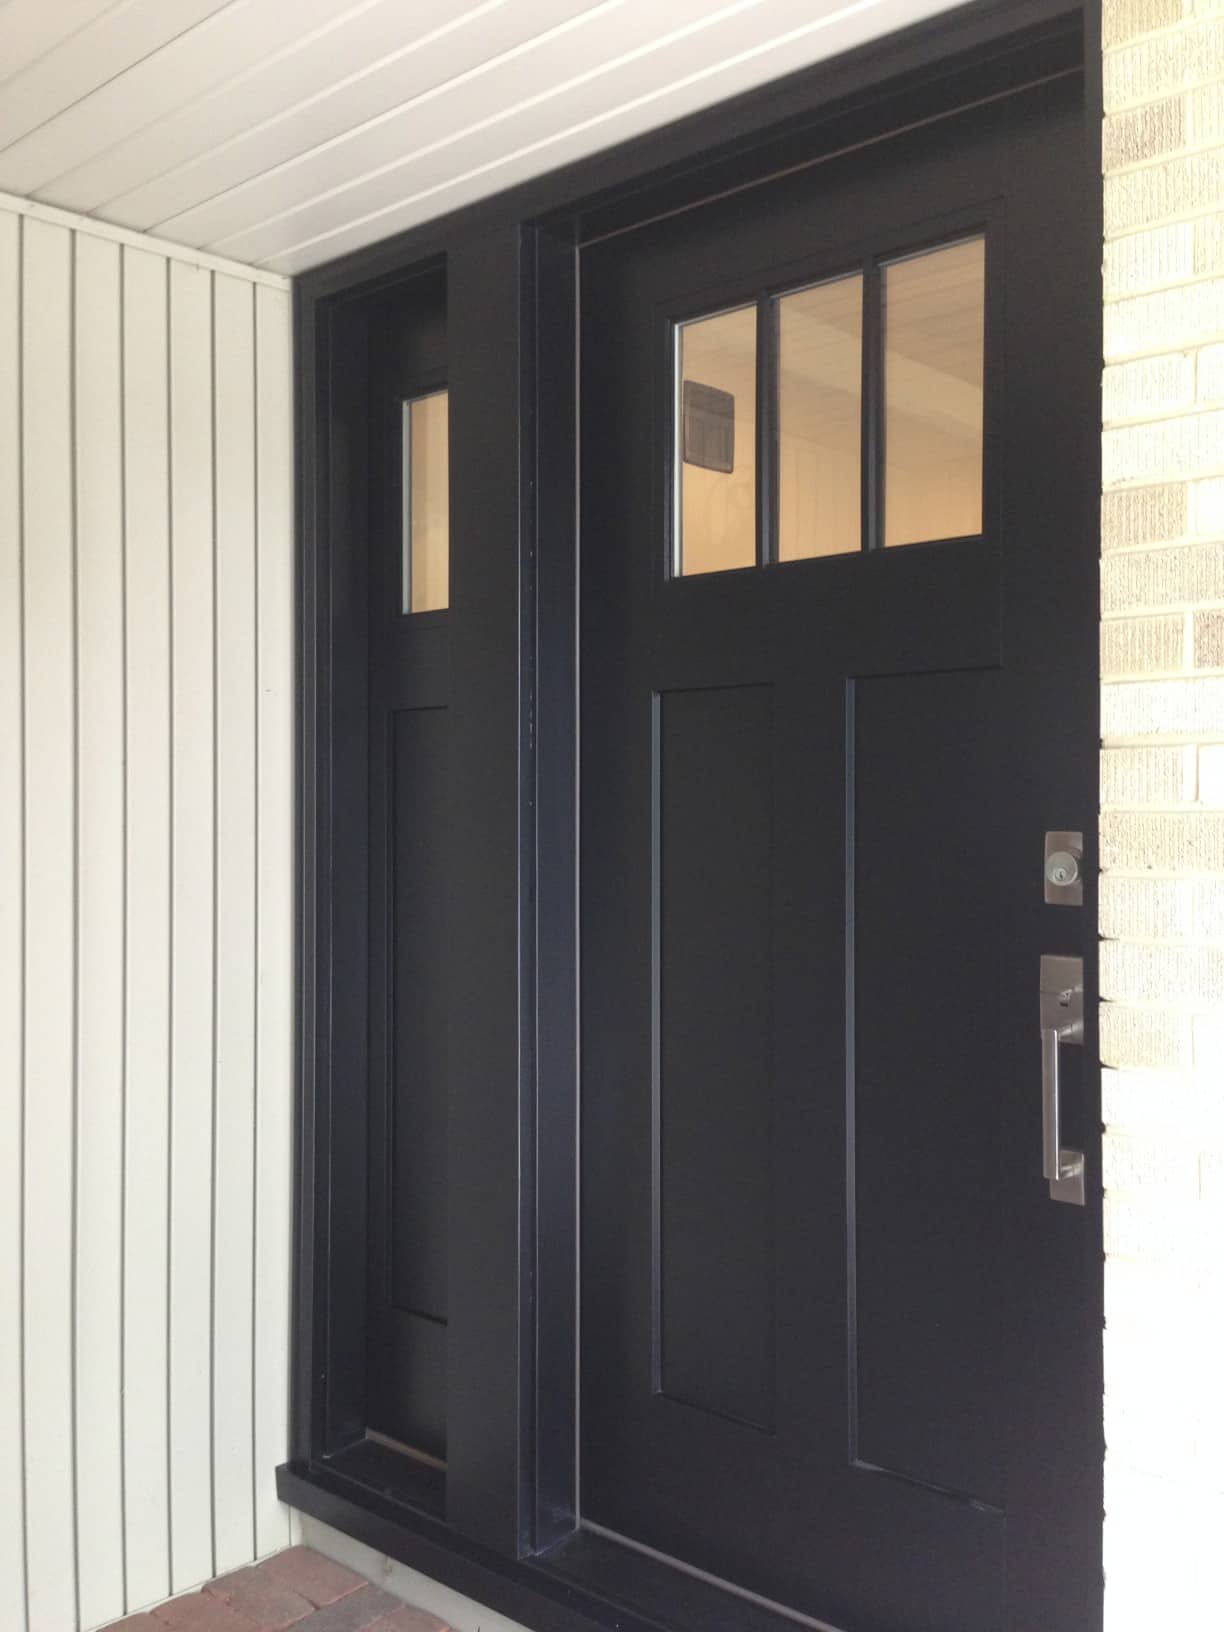 1632 #846947 Chicago's Best Fiberglass Entry Doors Sahara Window And Dors pic Fiberglass Entry Doors With Glass 38611224